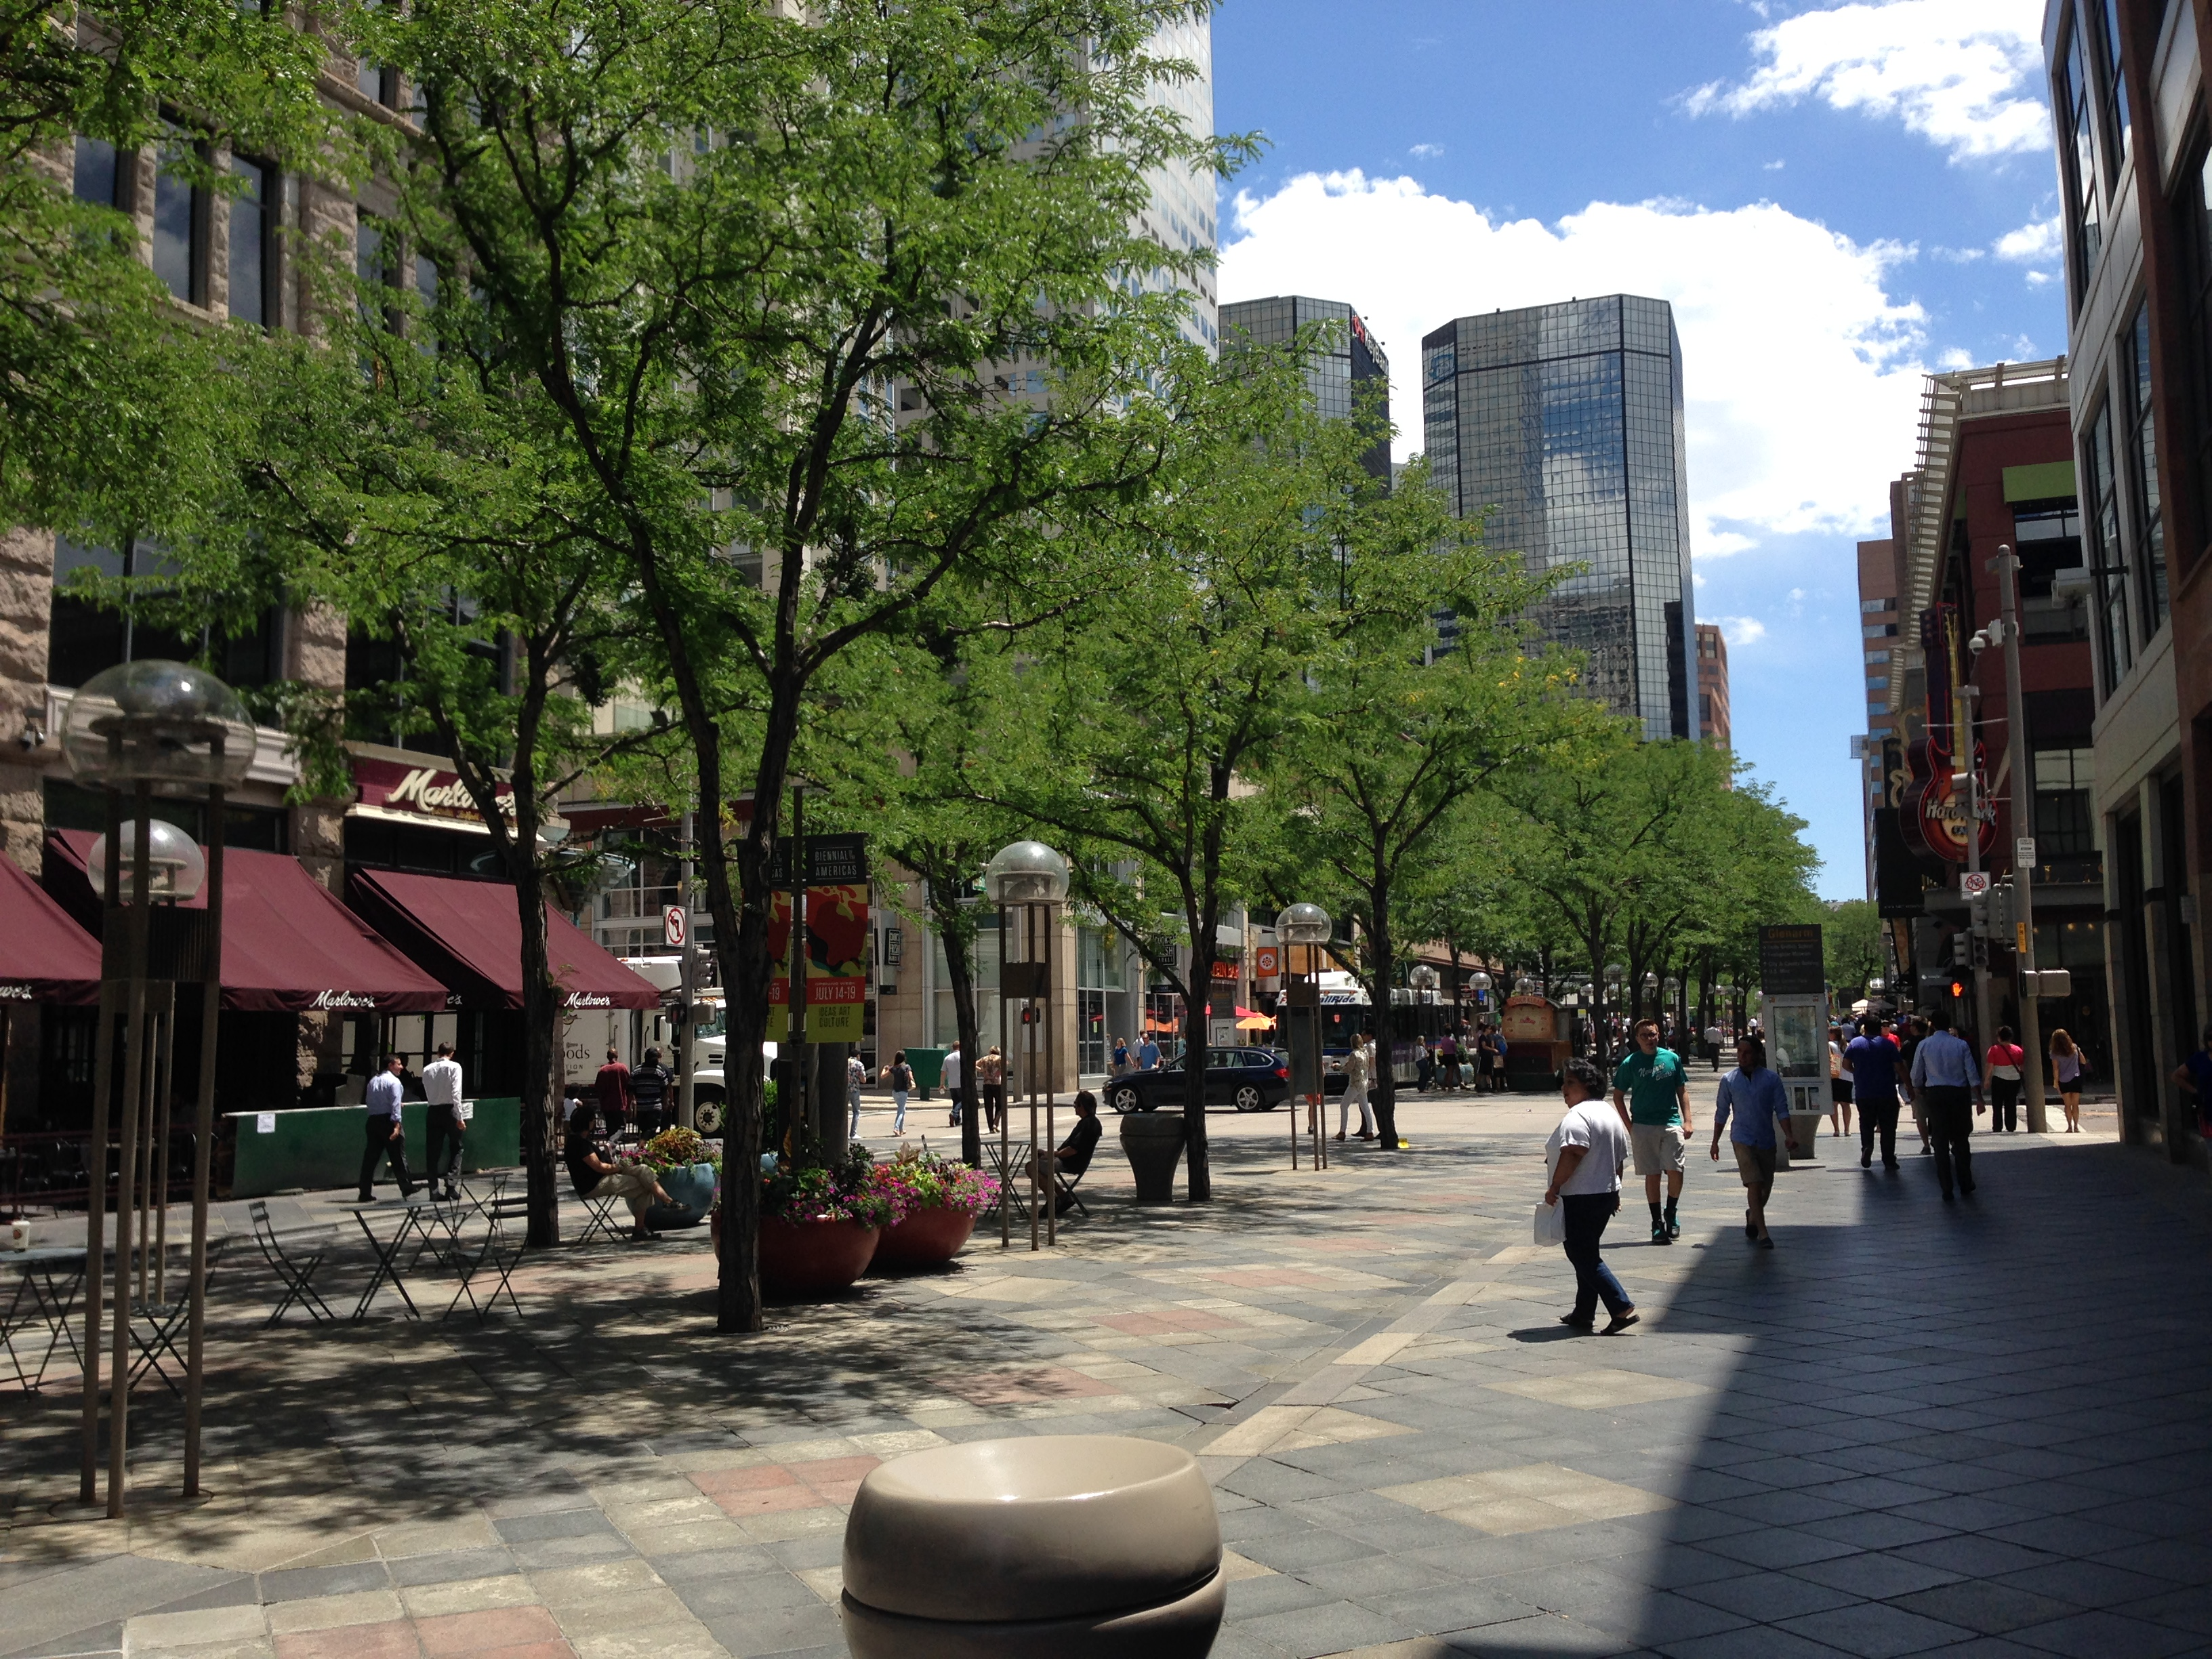 Denver Has Incredibly One Of America S Best Pedestrian